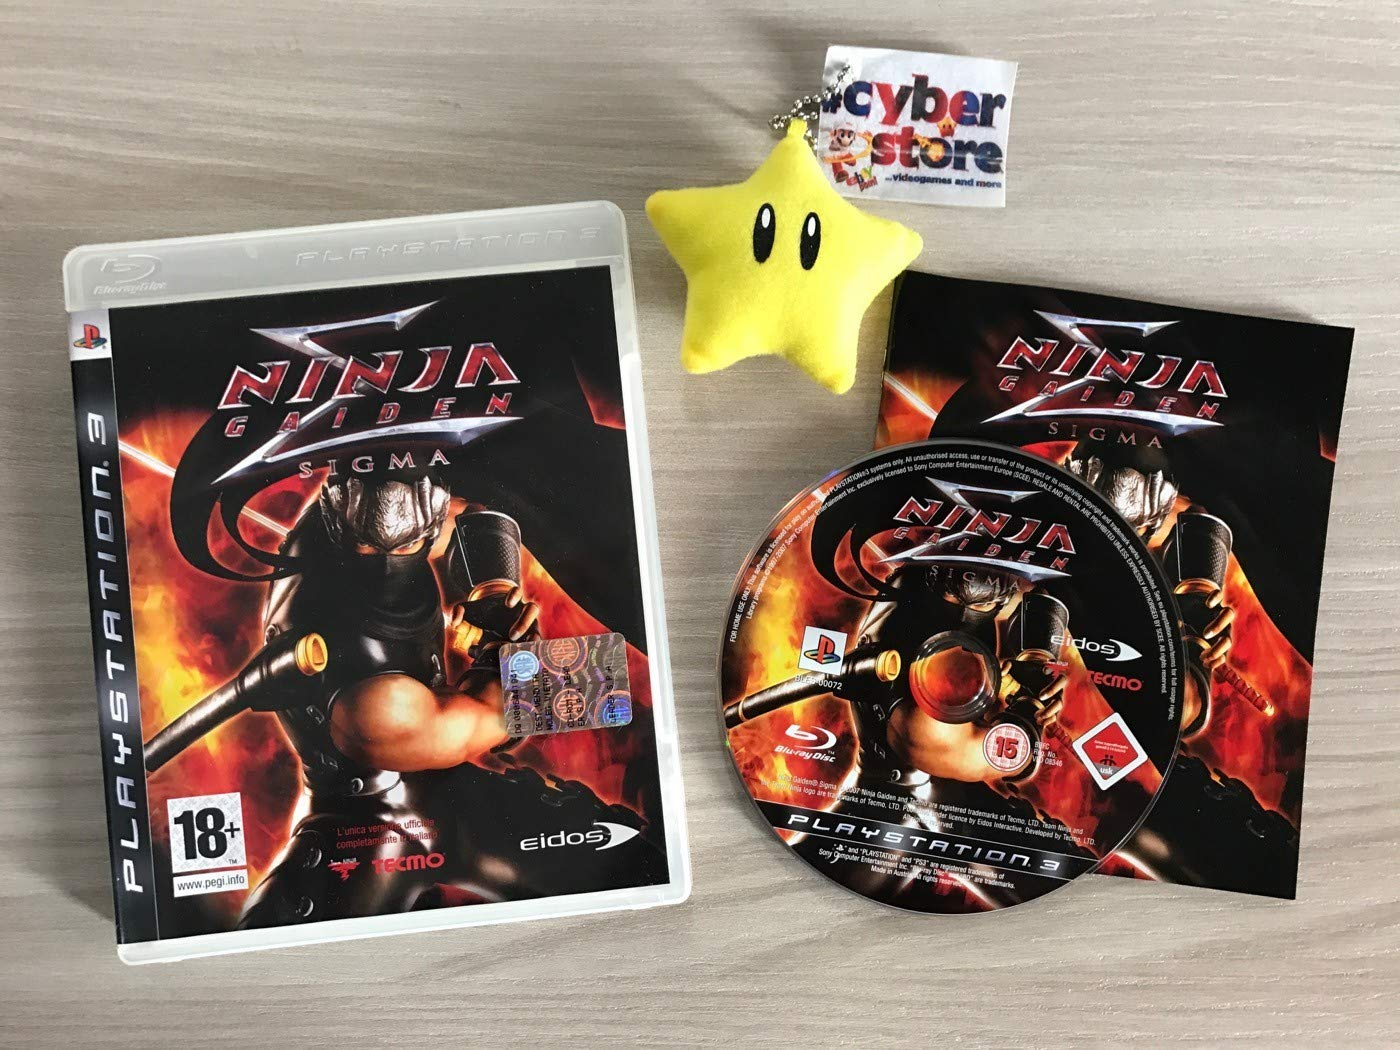 Amazon.com: PS3 - Ninja Gaiden Sigma - [PAL EU - NO NTSC ...